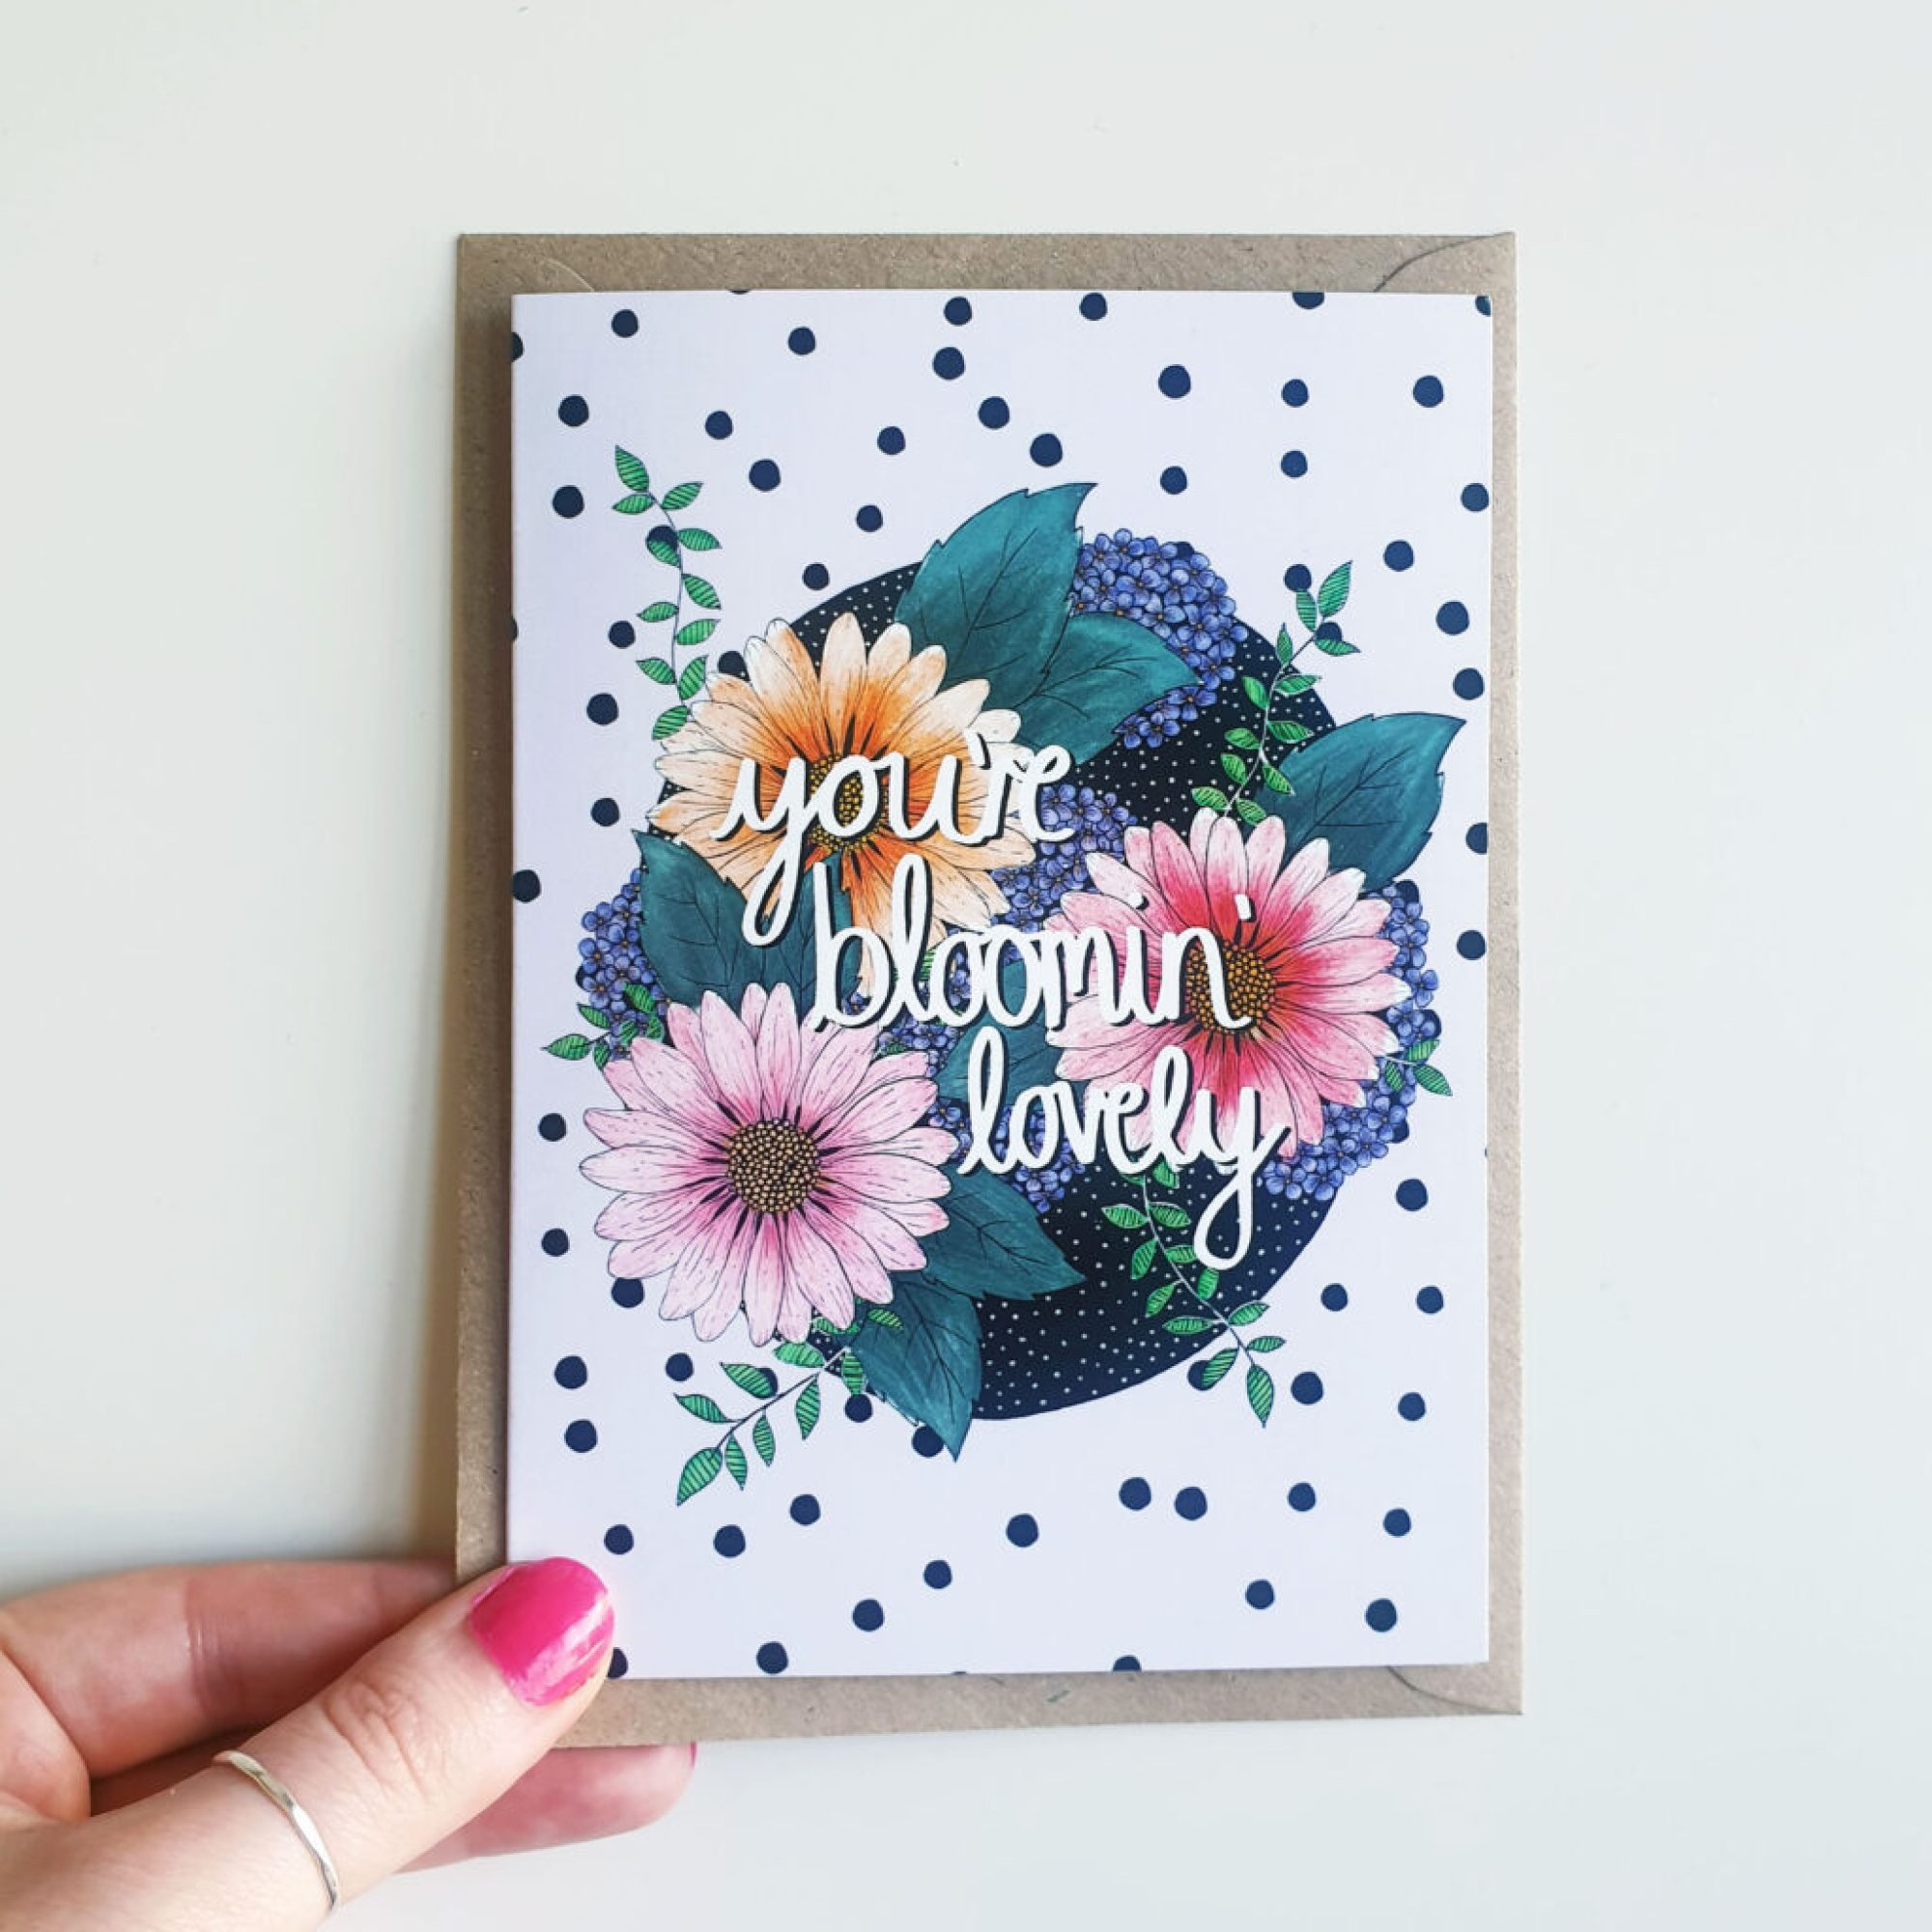 Bloom by Han. Daisy A6 Hand-drawn Greetings Card. Colourful flower illustration with brown envelope and blank inside